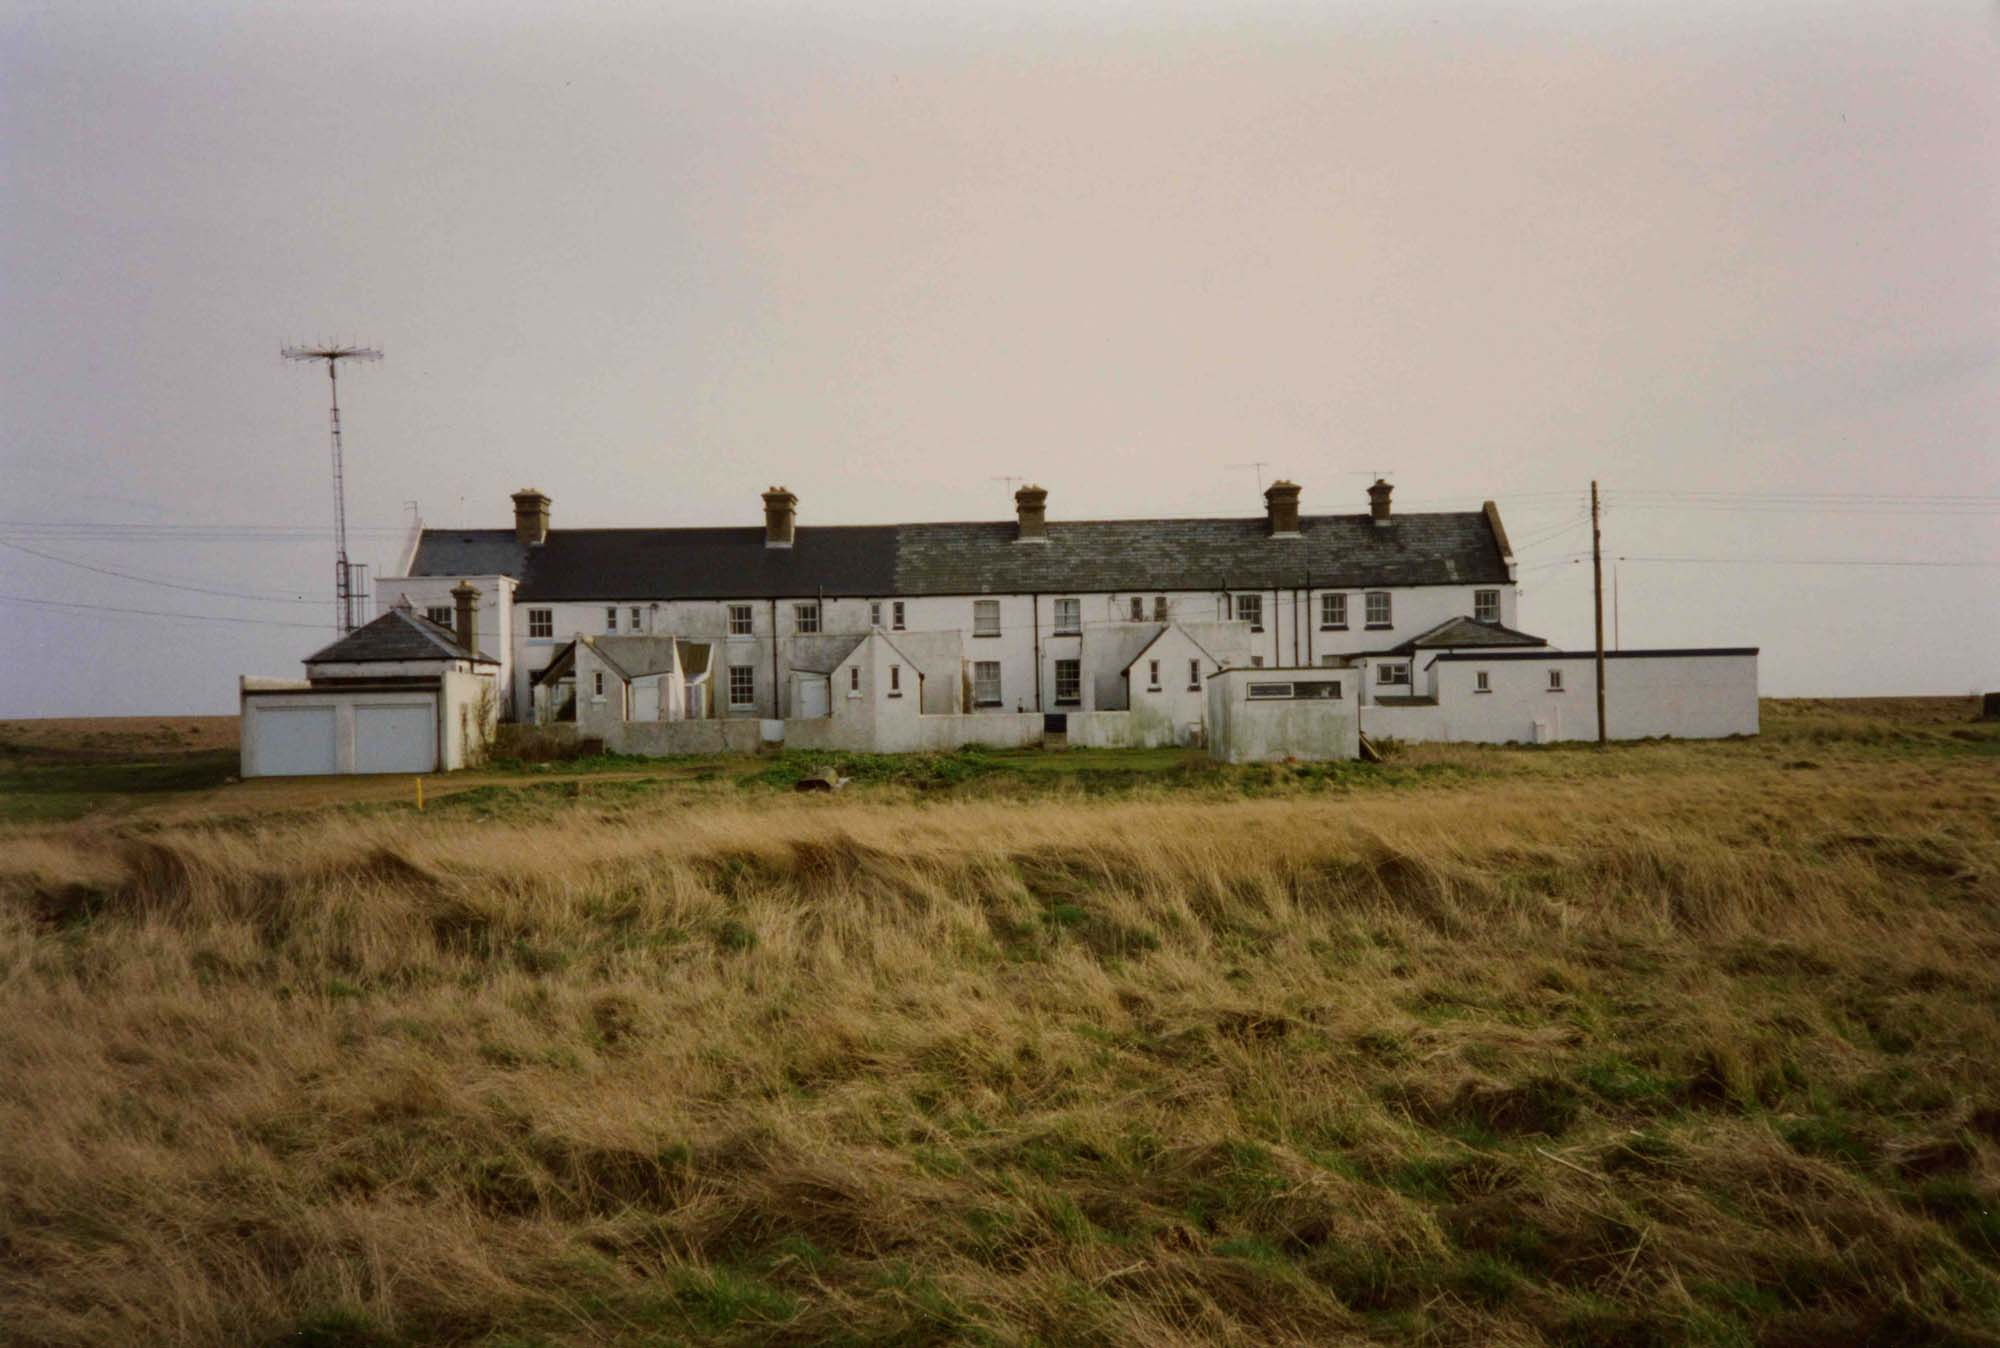 a photo of a row of white house seen across a flat fields